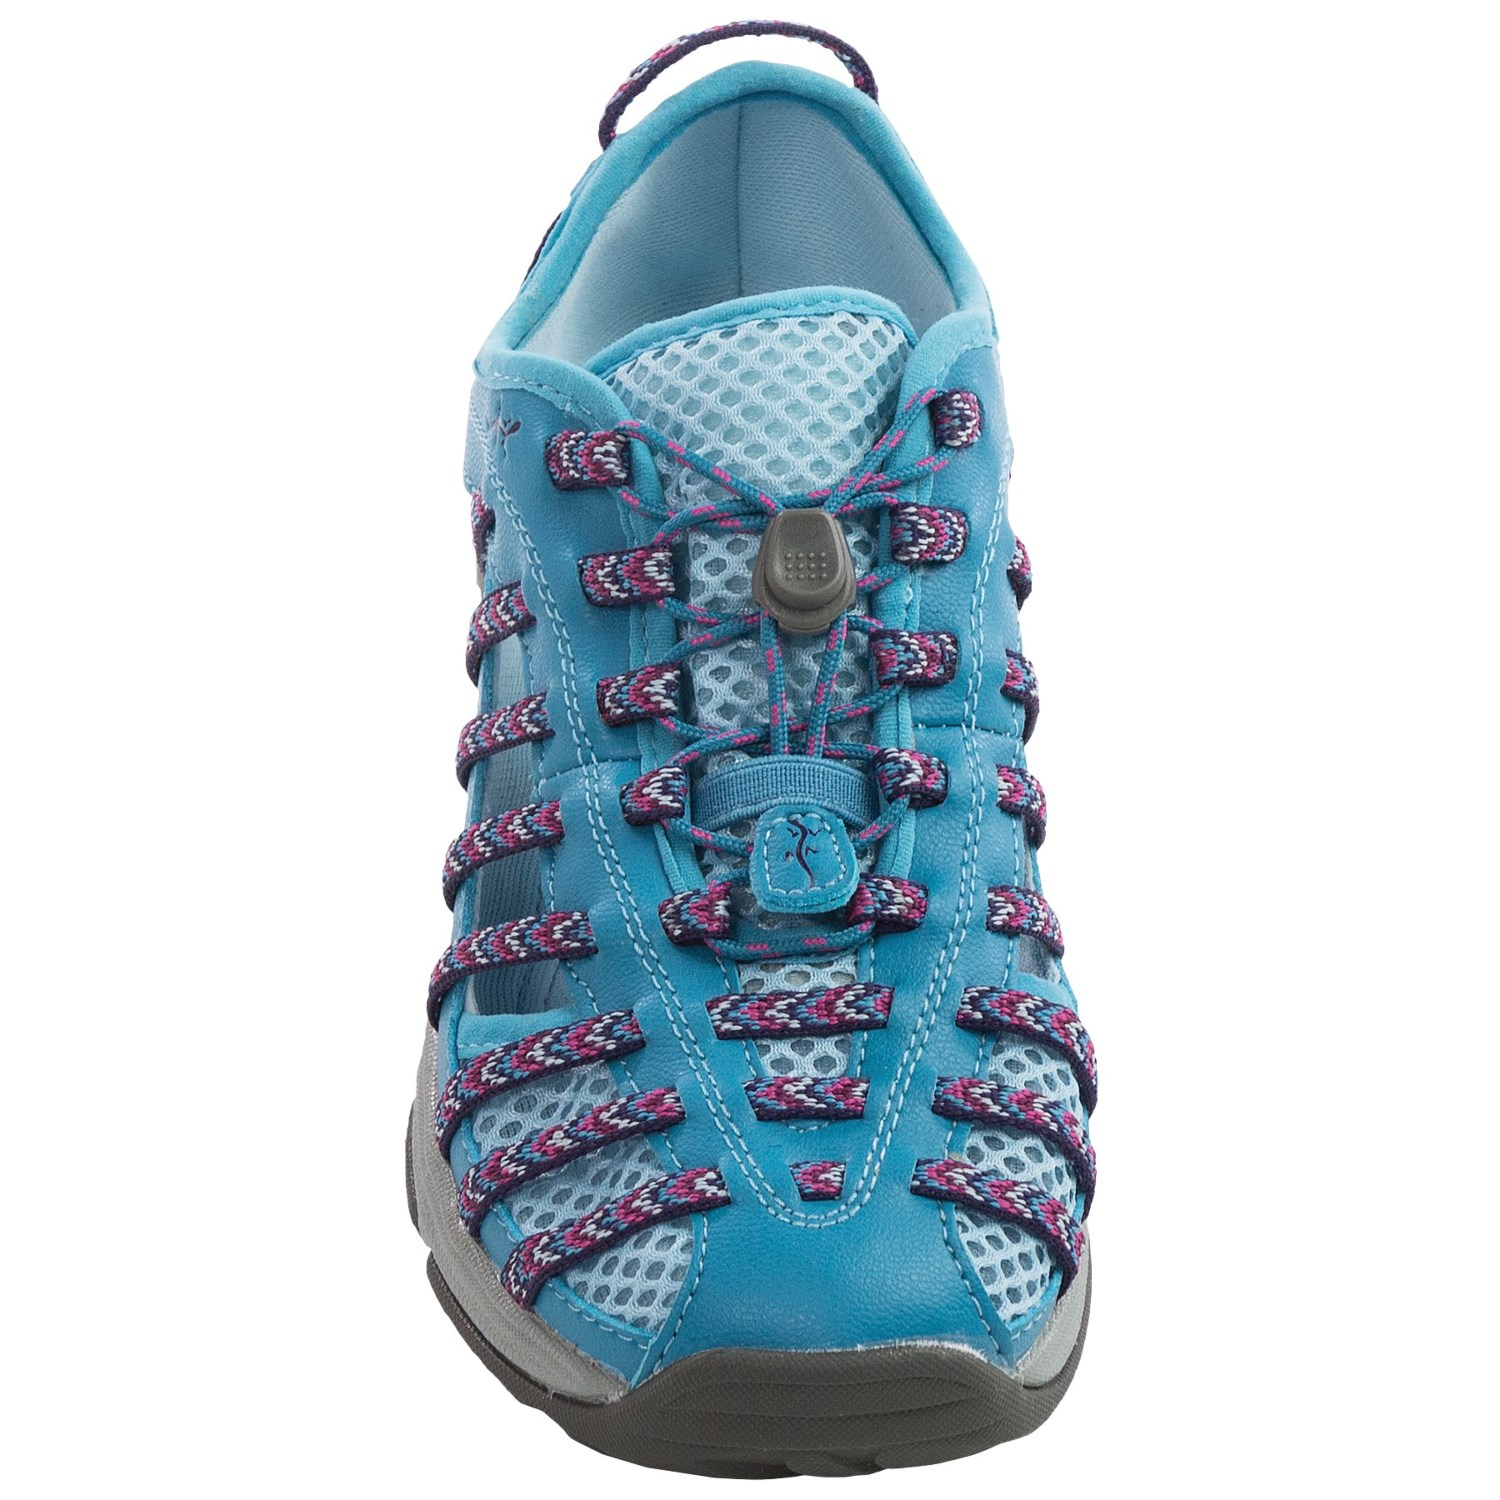 9a34edbad3a29b Chaco OutCross Evo 2 Water Shoes (For Women) - Save 73%